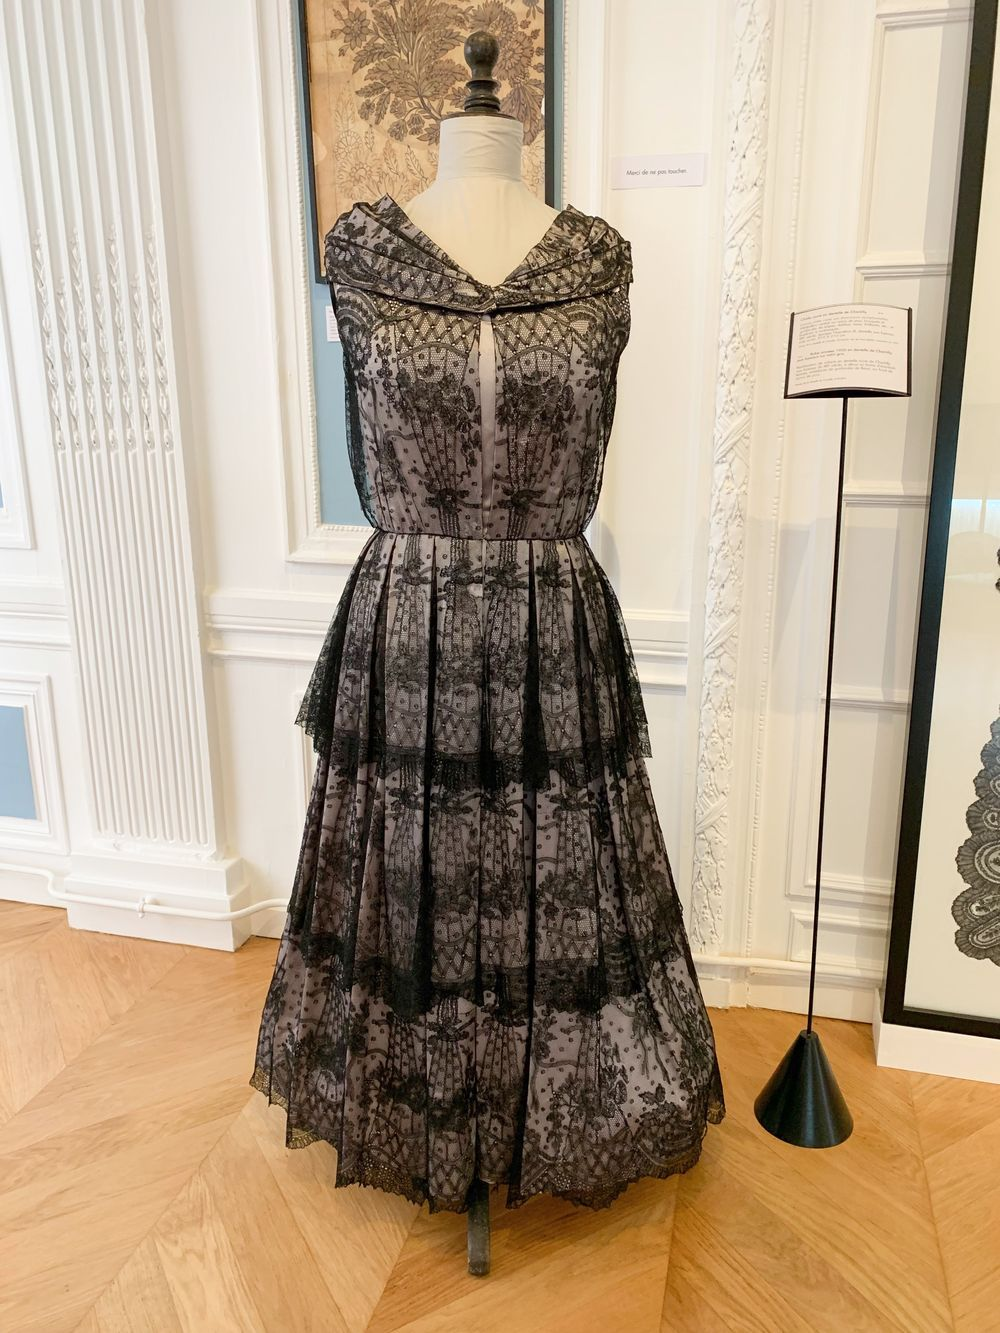 Chantilly Lace Museum, France